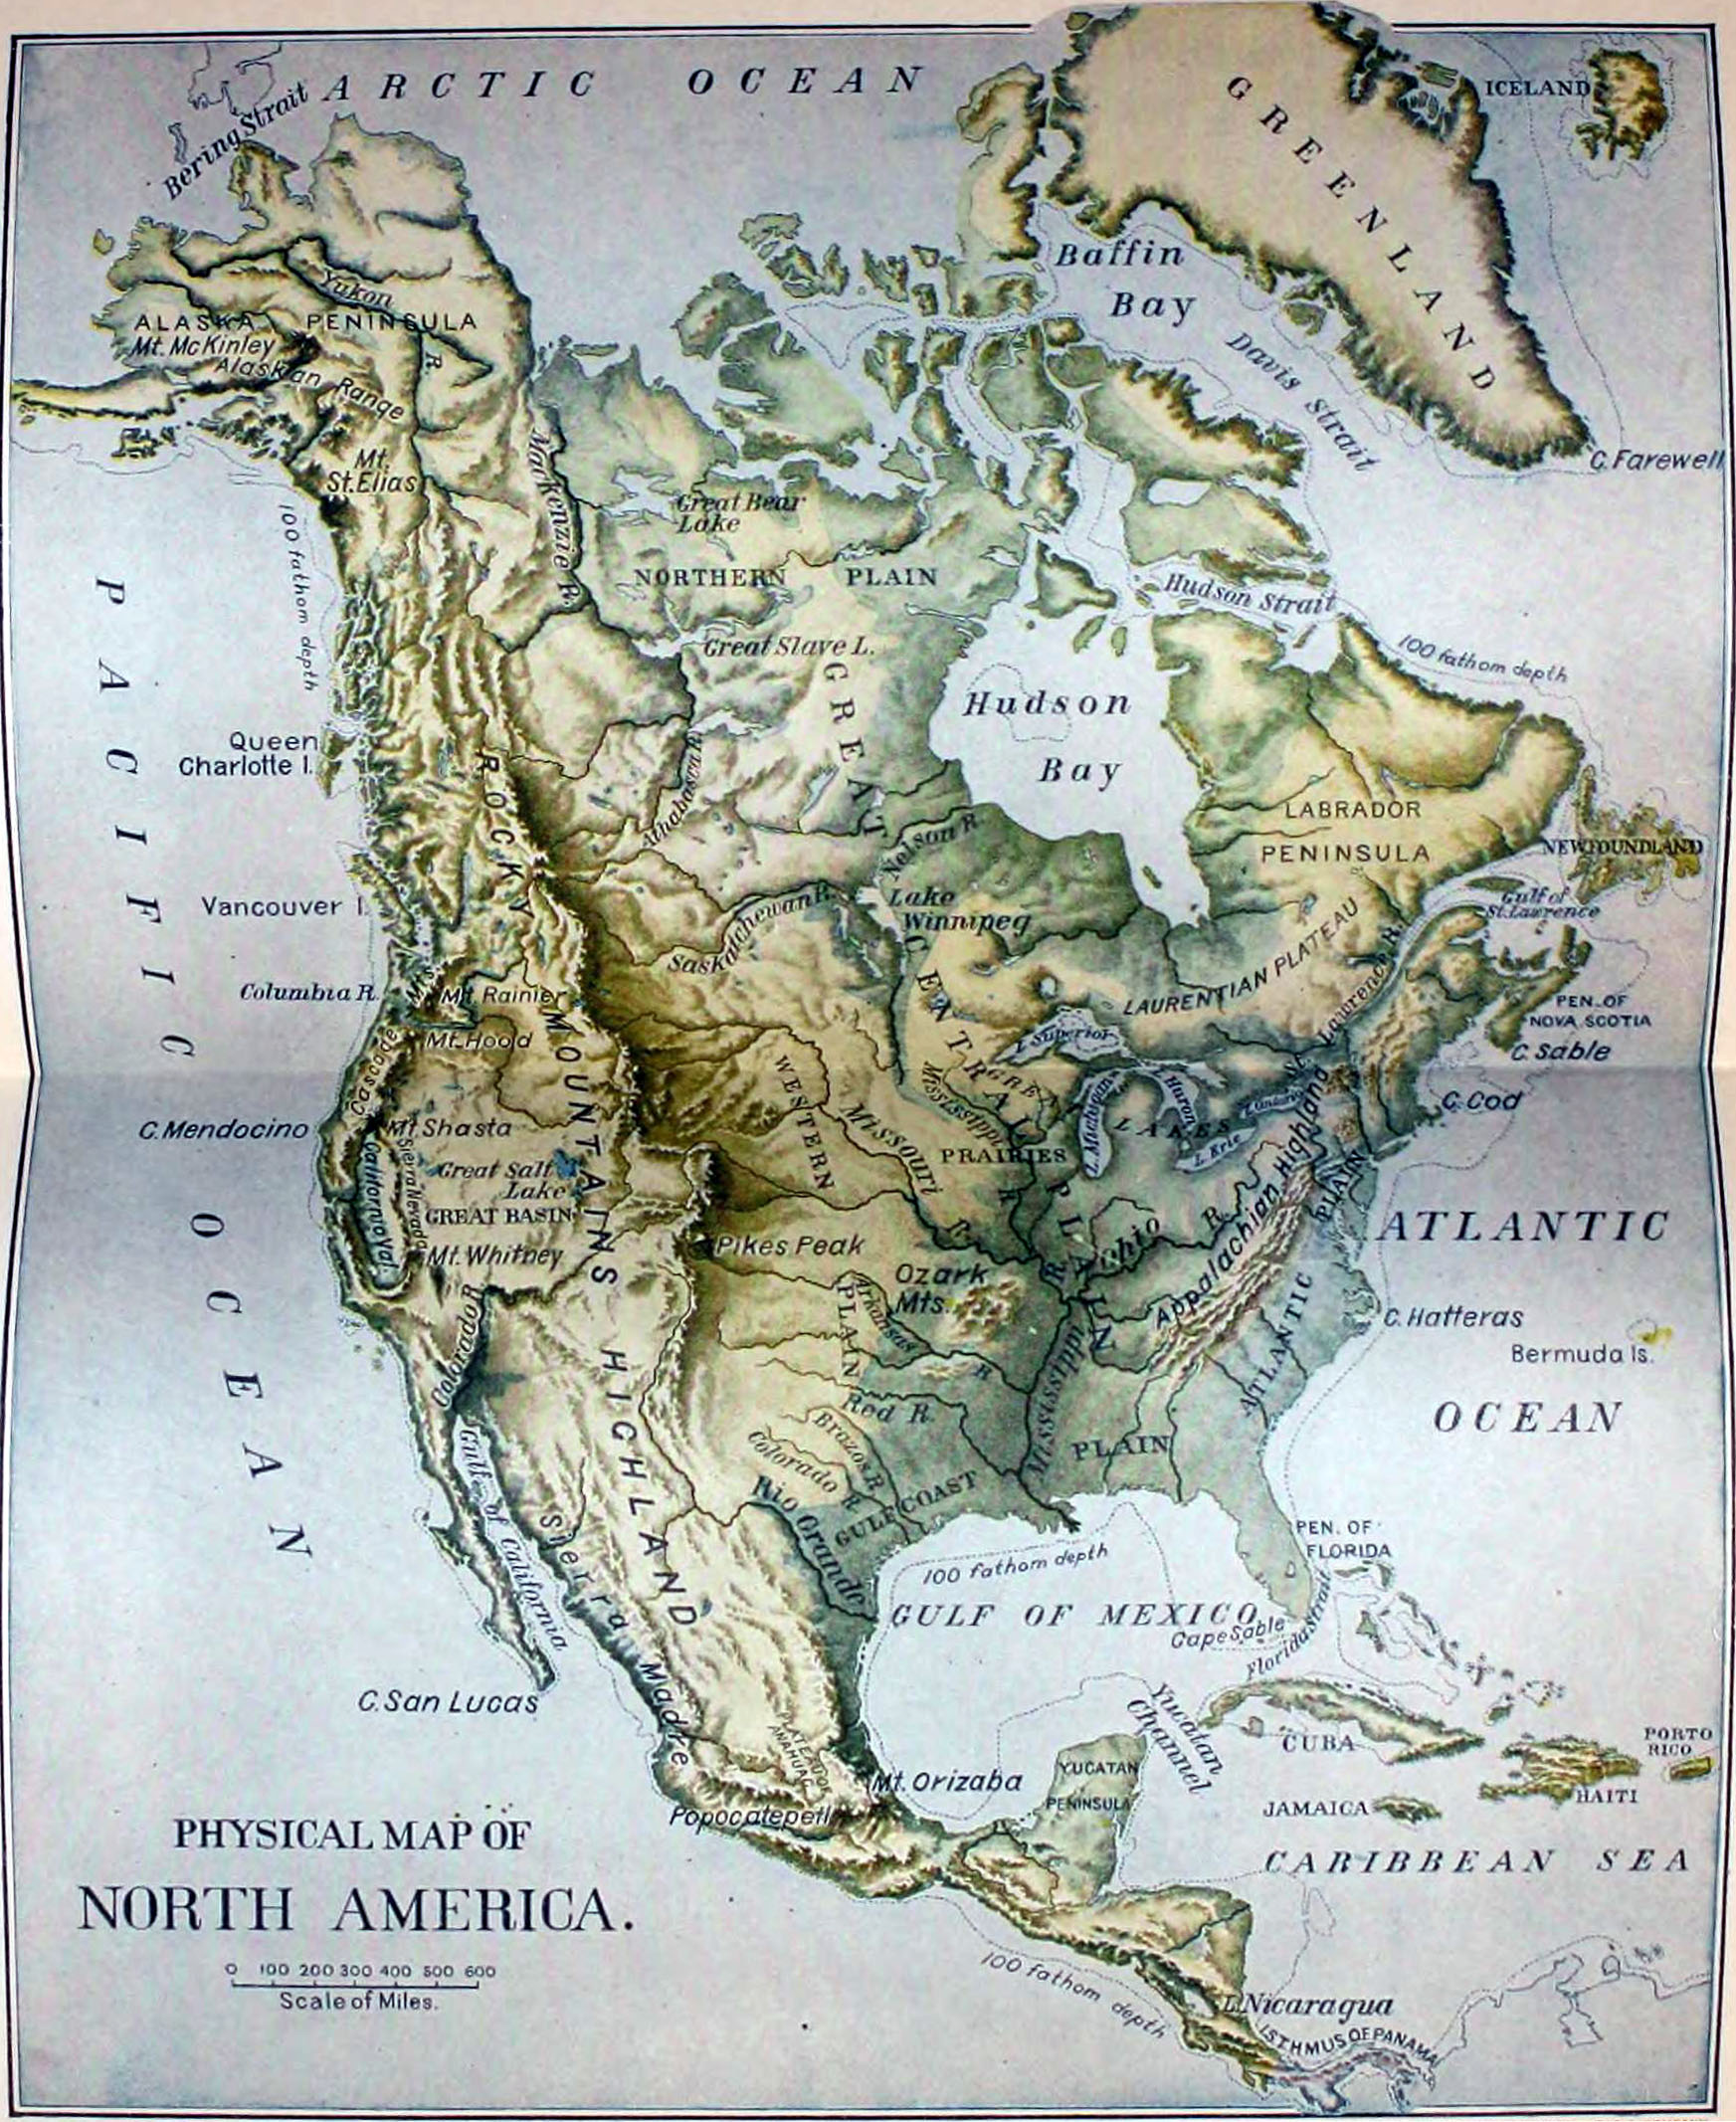 North America Map Physical.File Nie 1905 America North Physical Map Jpg Wikimedia Commons